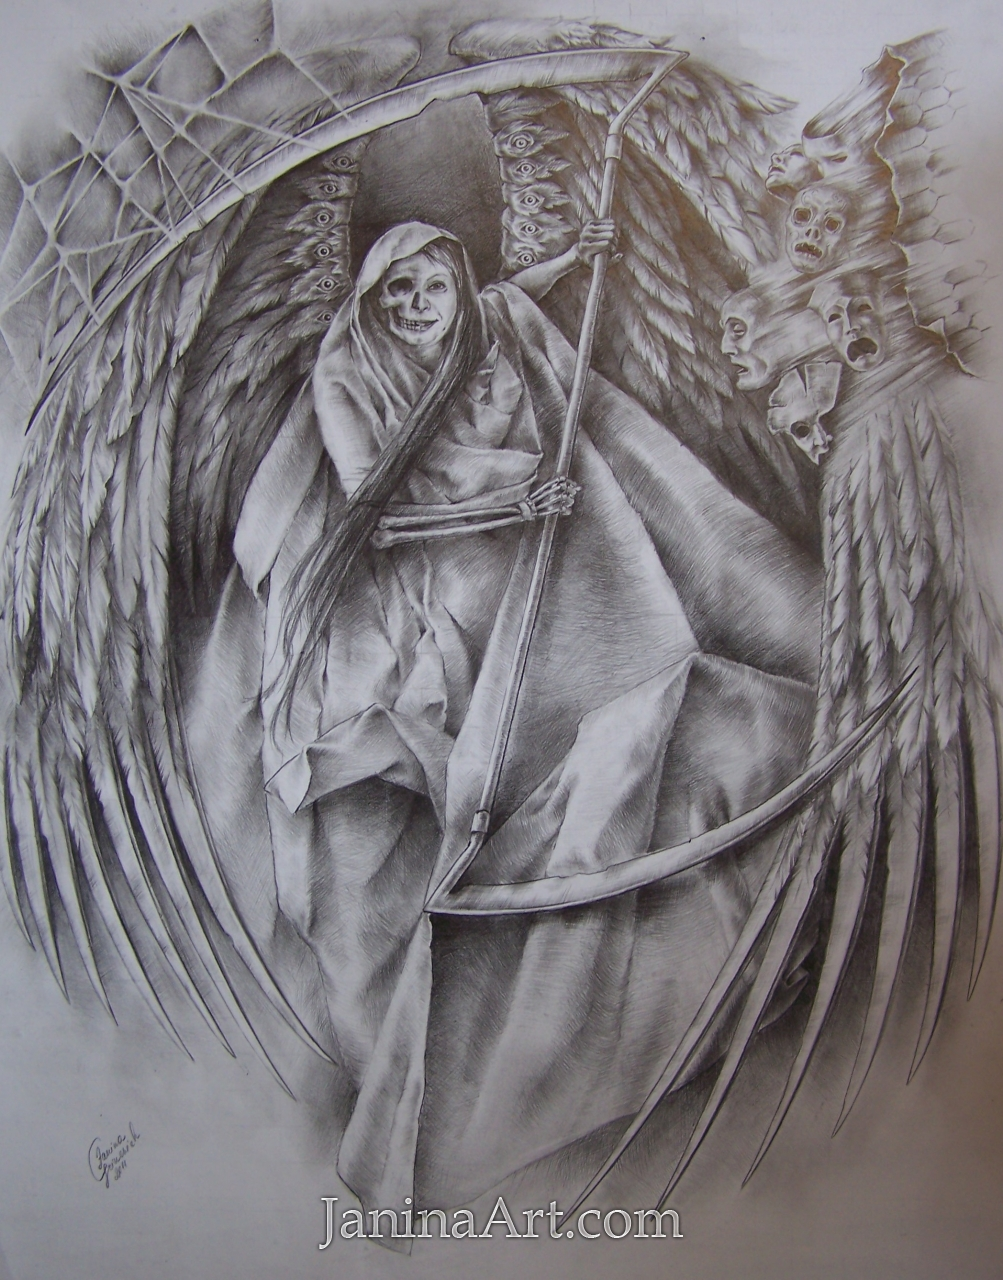 dance of death graphic drawing for tatoo sold gallery janinaart com world of janina grinevich